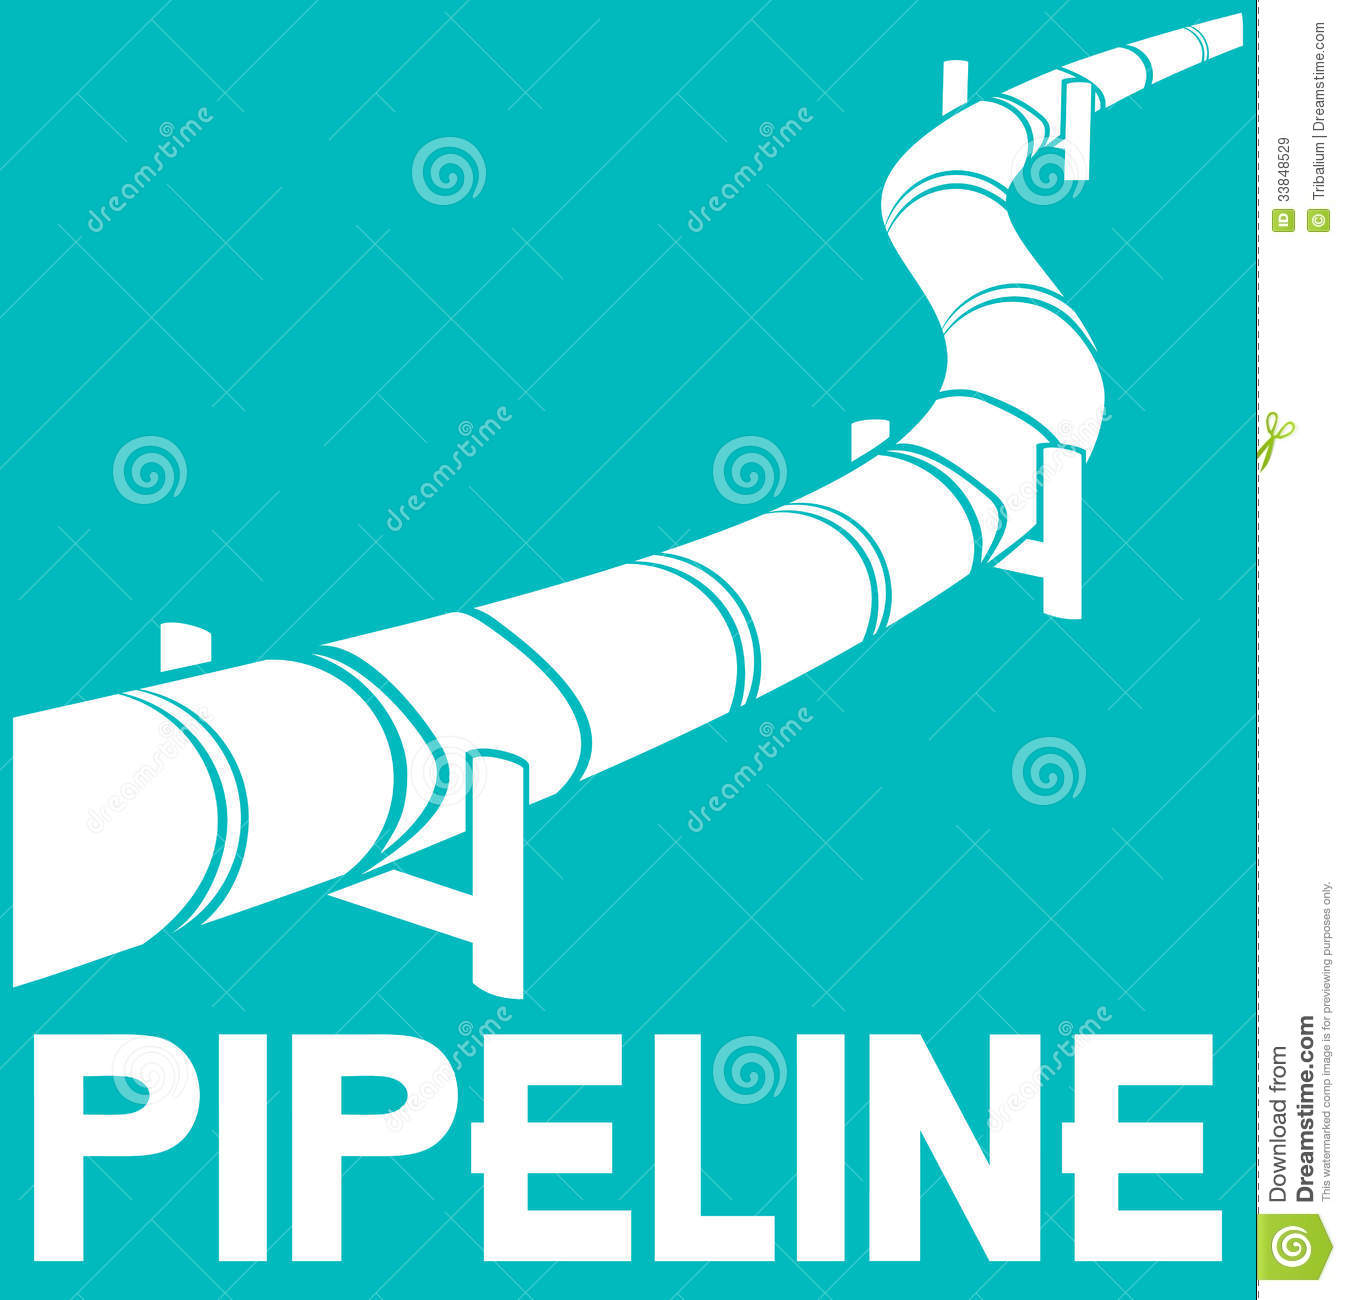 Pipeline Royalty Free Stock Images - Image: 33848529